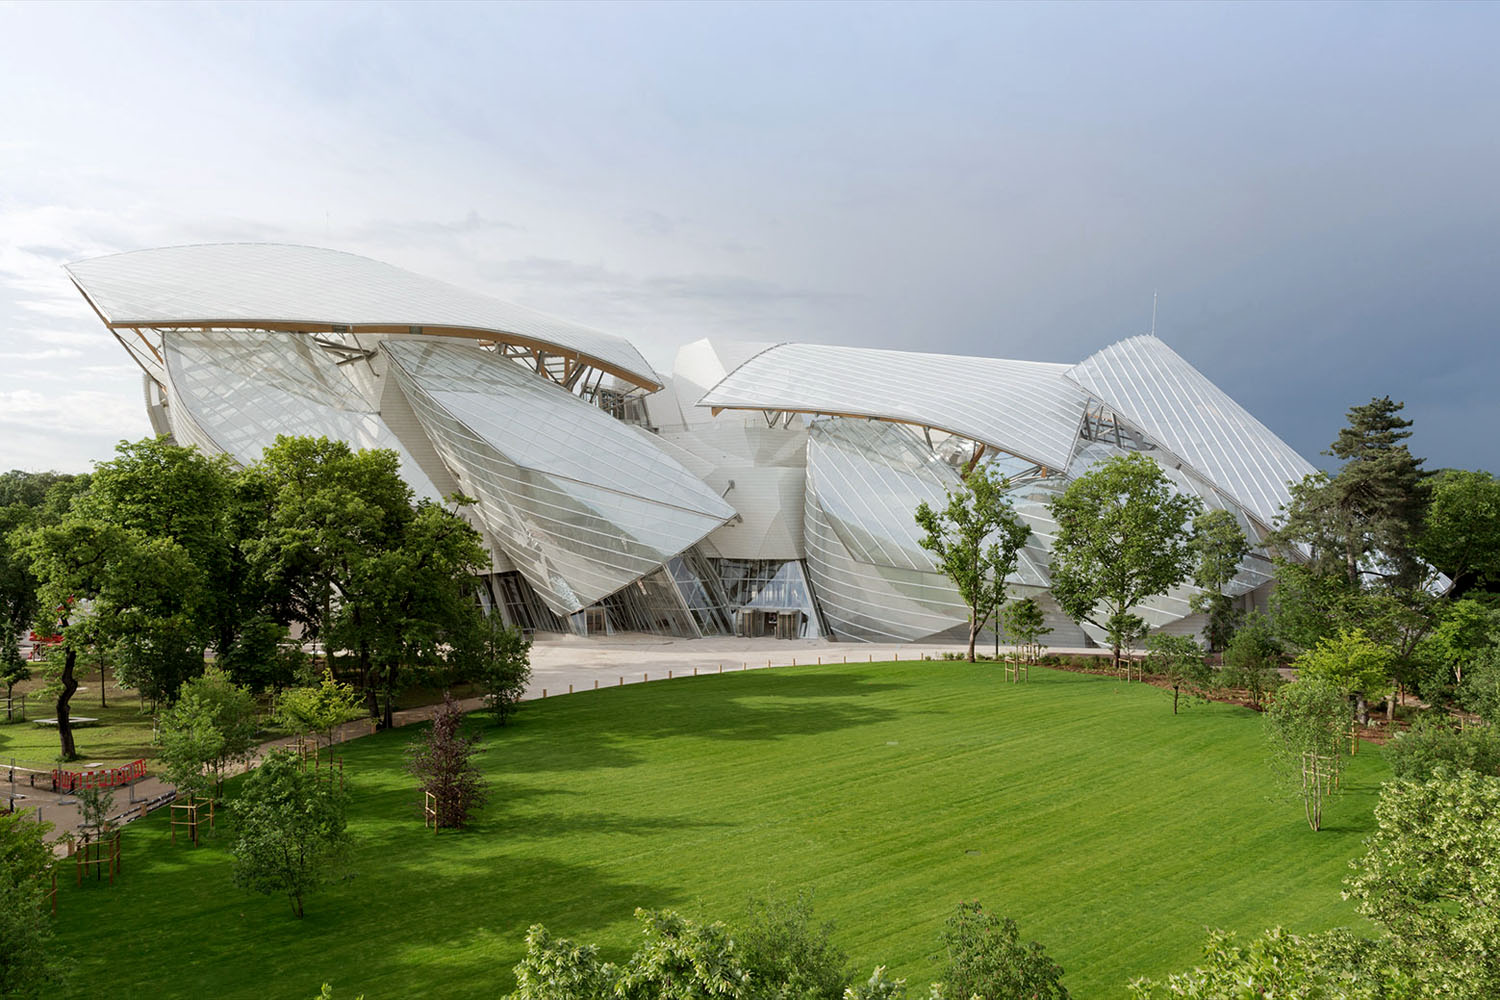 Fondation Louis Vuitton design by Gehry Partners